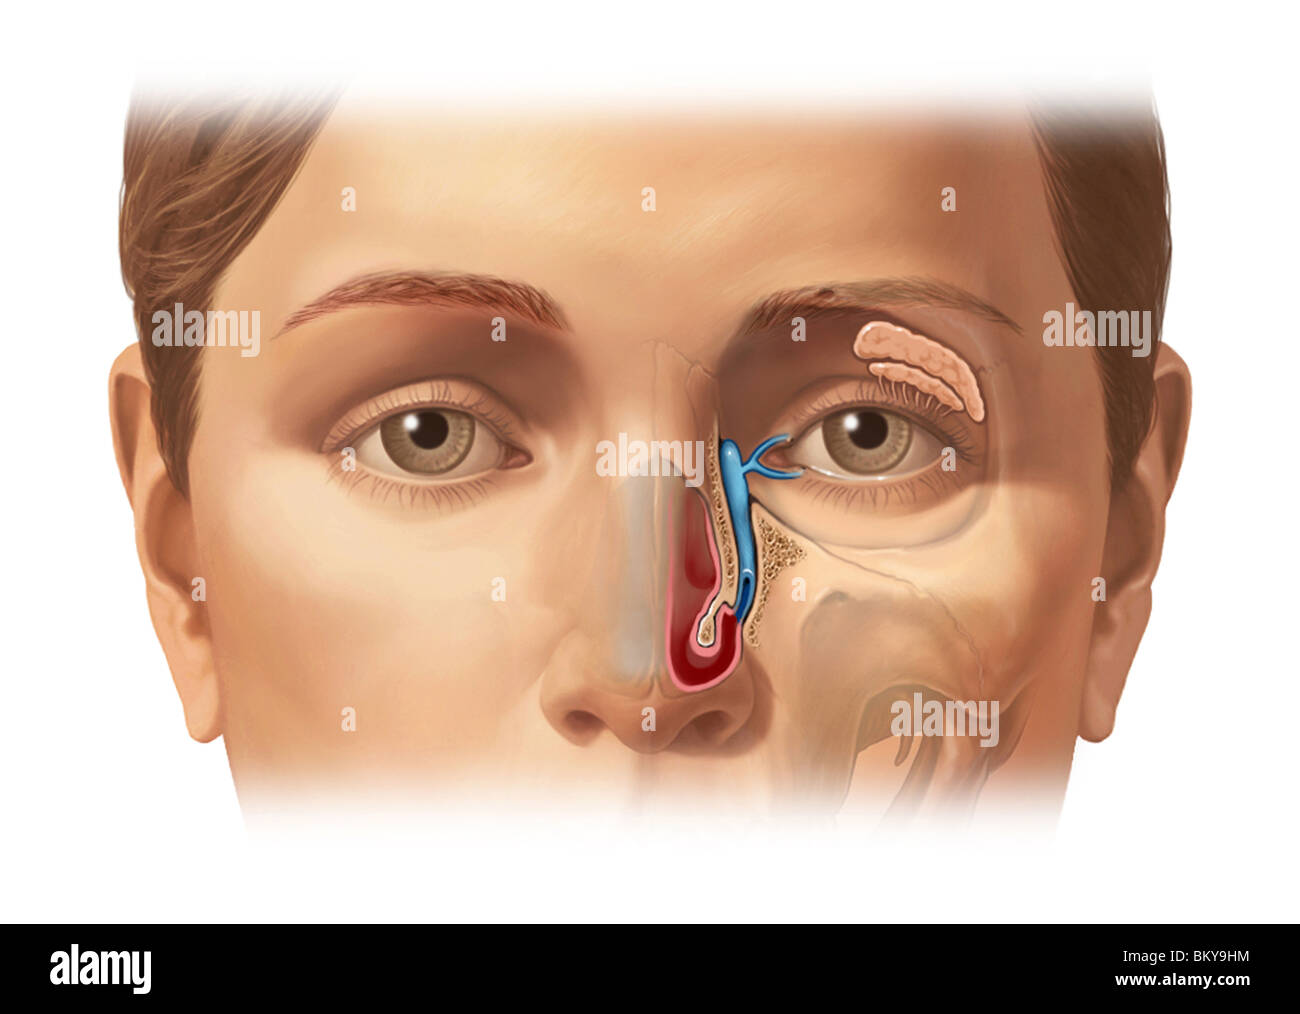 This image details the lacrimal apparatus which produces tears and ...